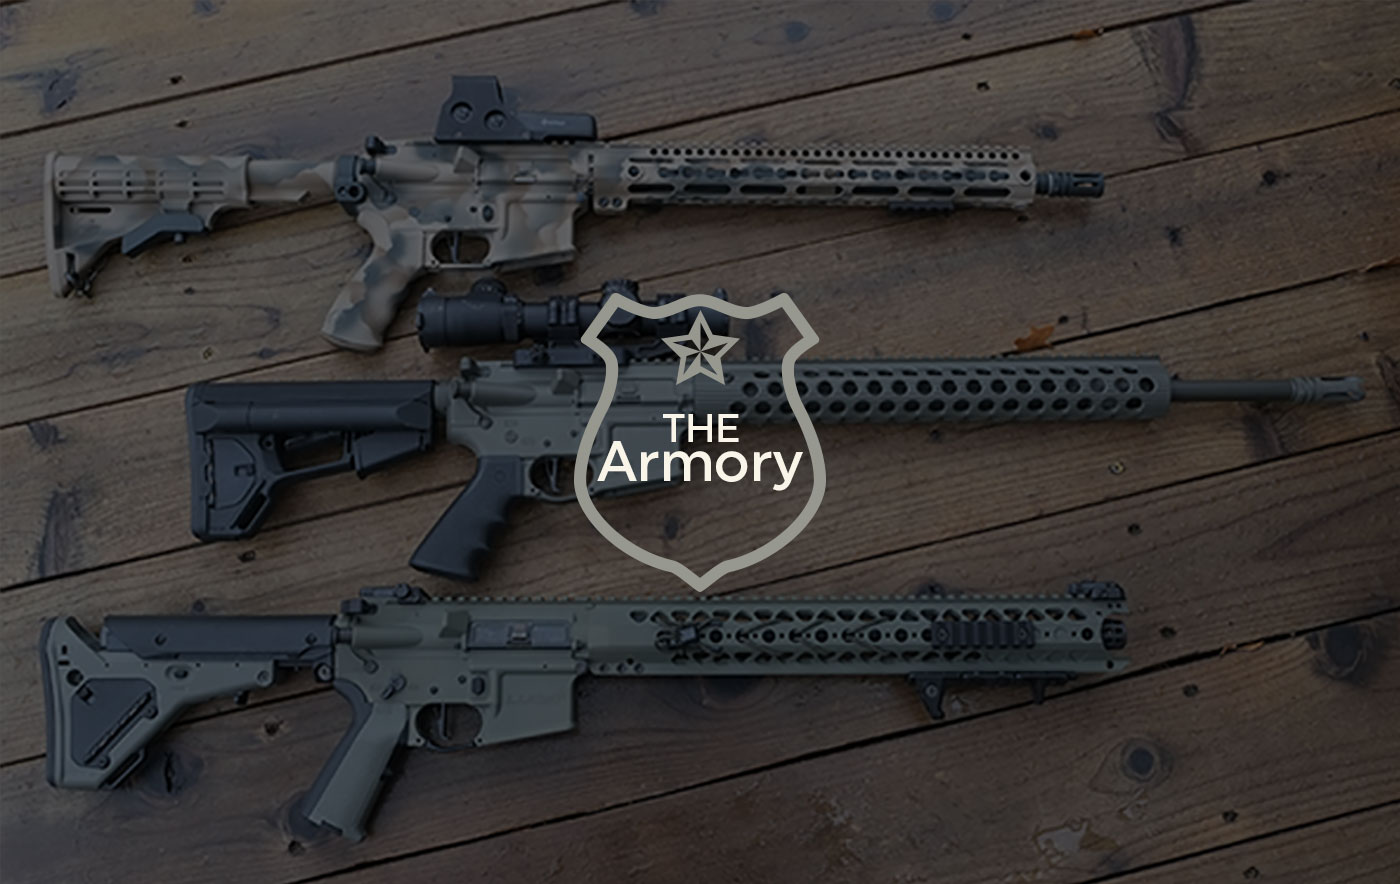 Custom Weapons and Accessories for sale at HRH Combat Arms